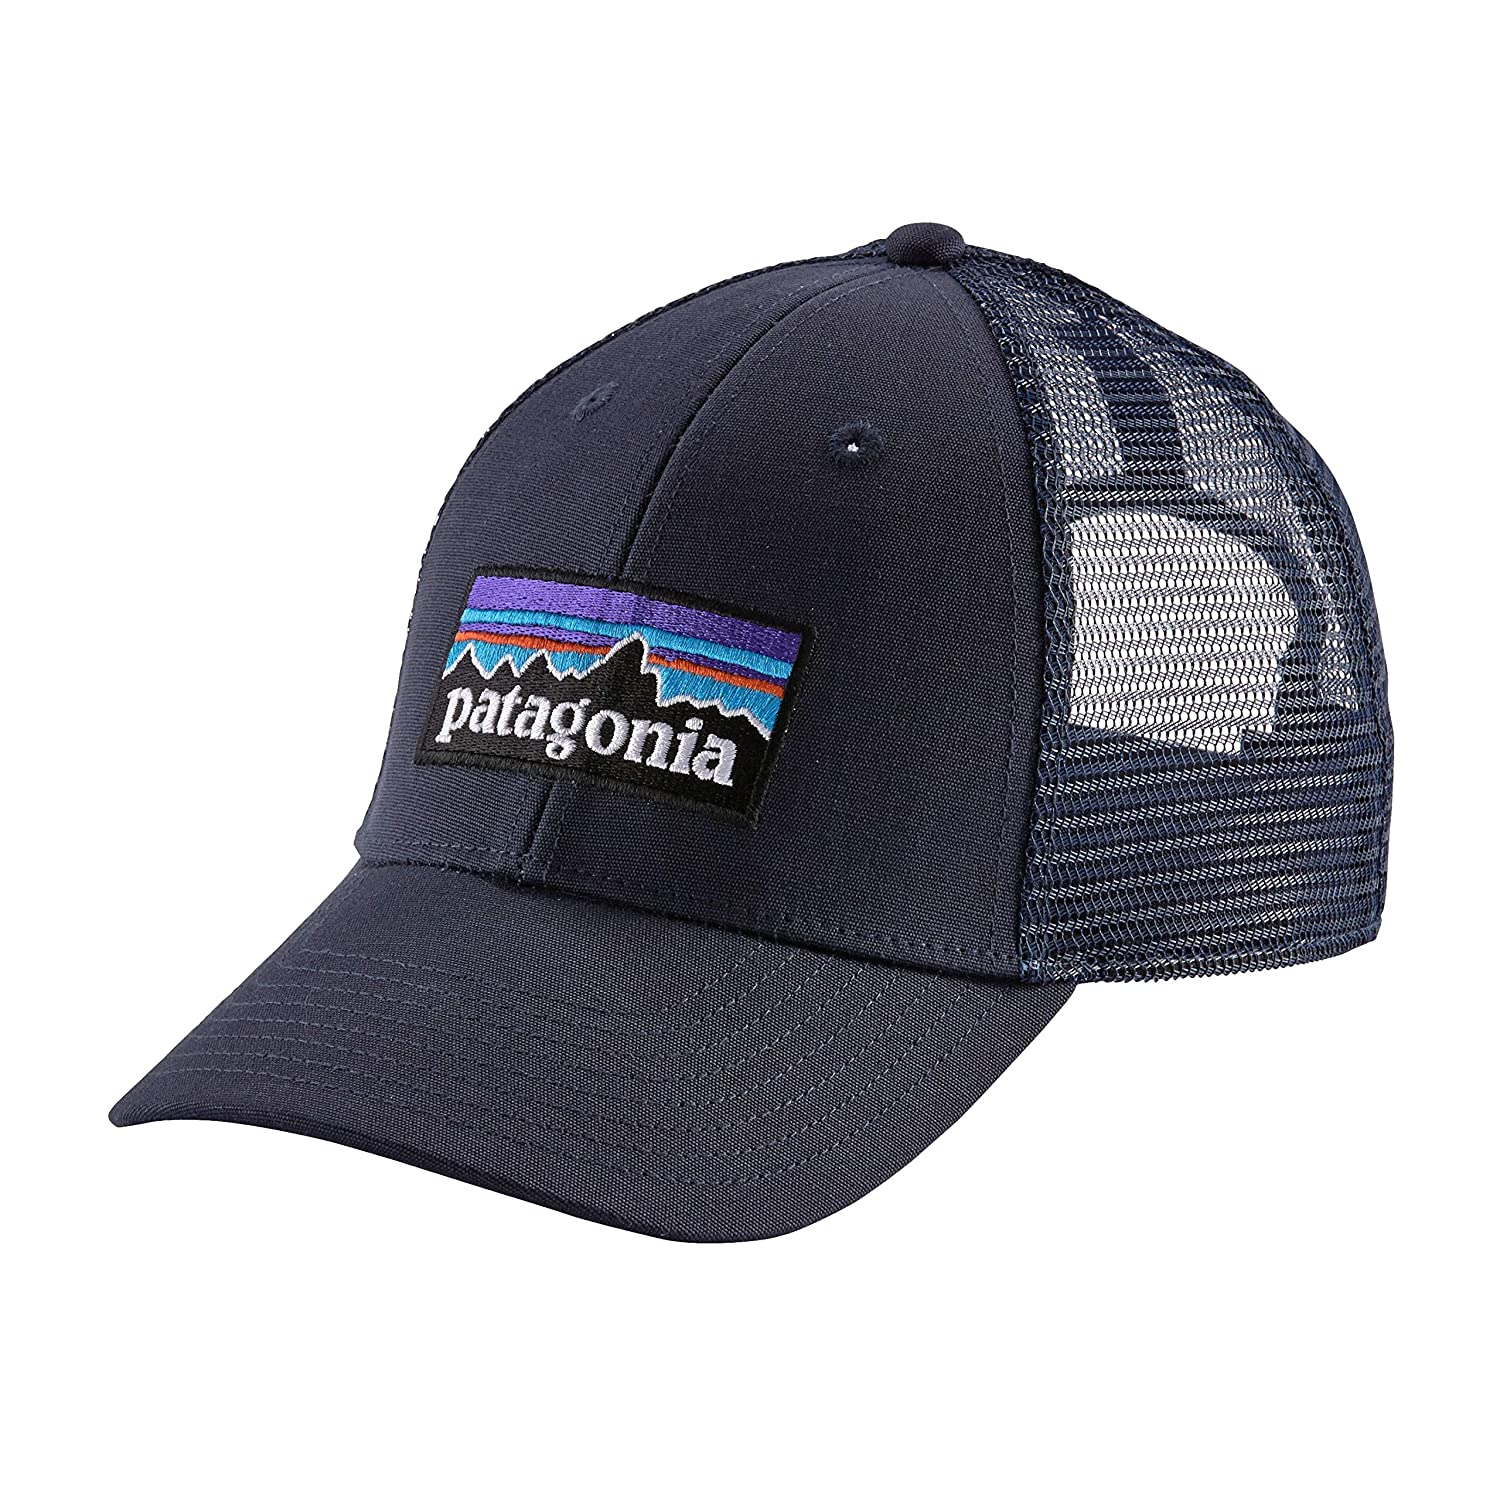 Patagonia Mens P-6 LoPro Trucker Hat (One Size (21 1 2-23 1 2 ... 05442333bed